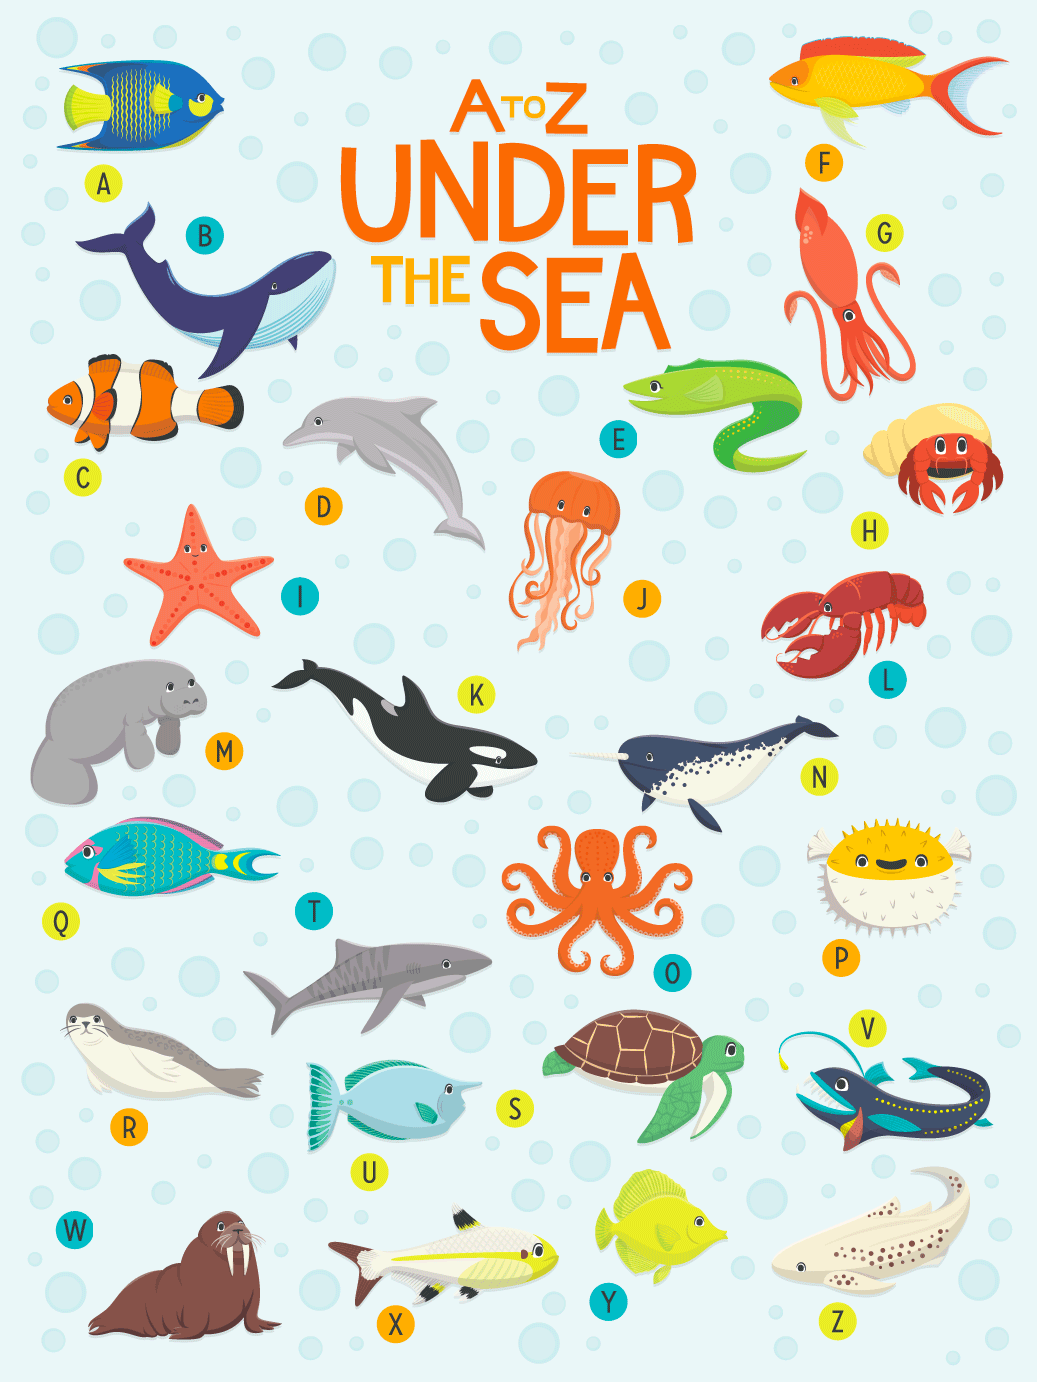 Can You Name These AZ Sea Animals? 🐠🐡🦀🐬🐢 Sea creatures